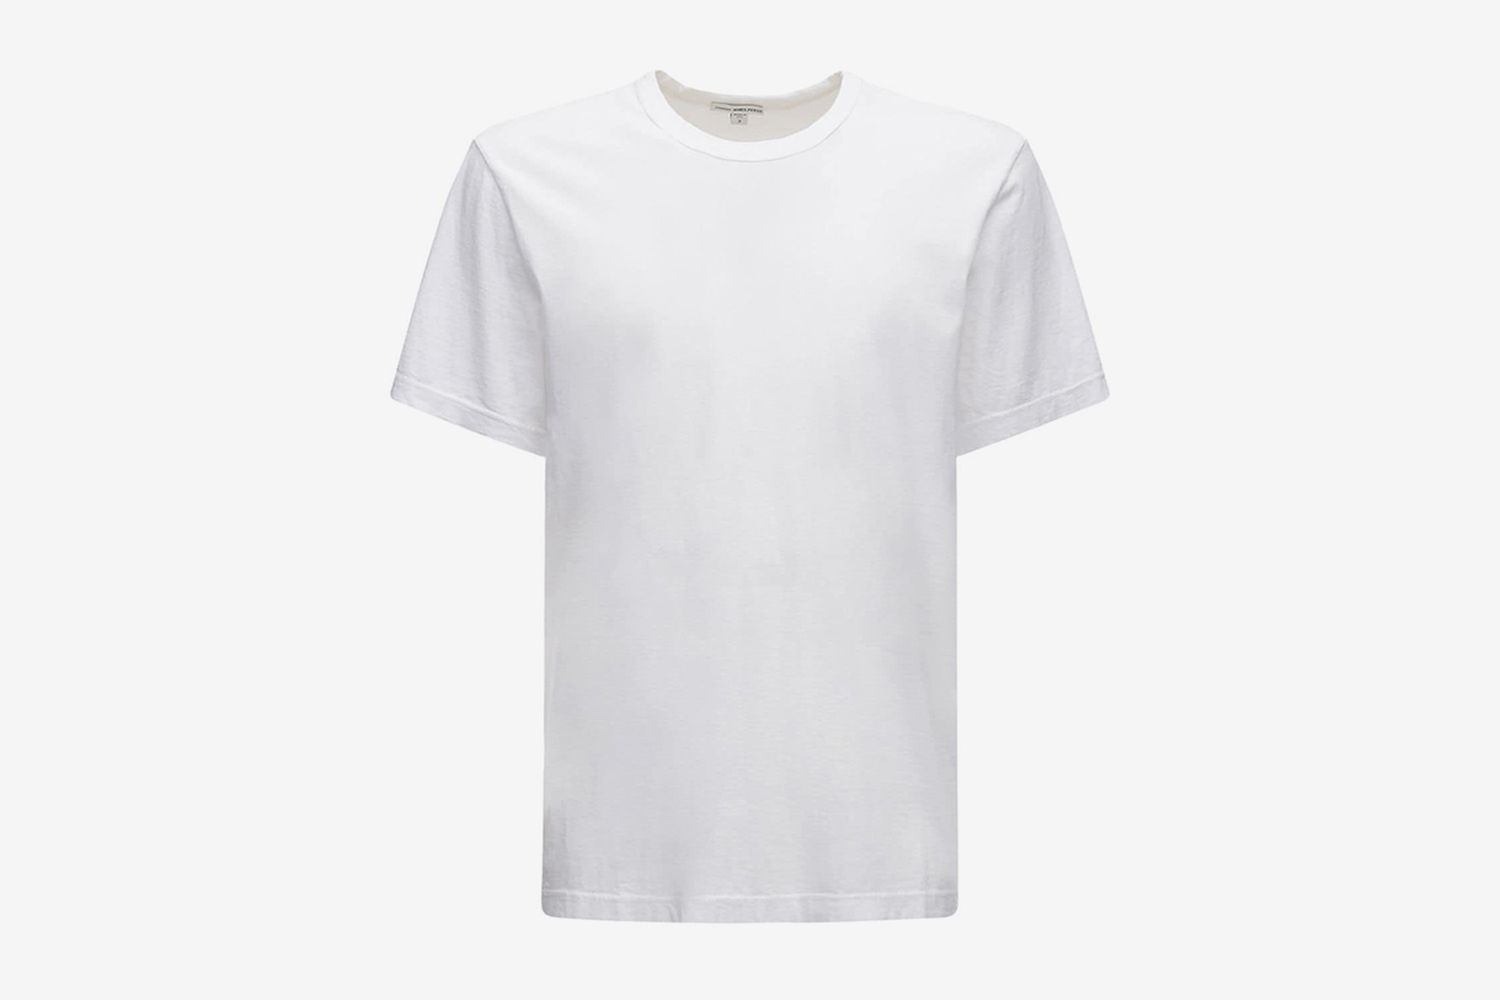 Classic Light Cotton T-shirt